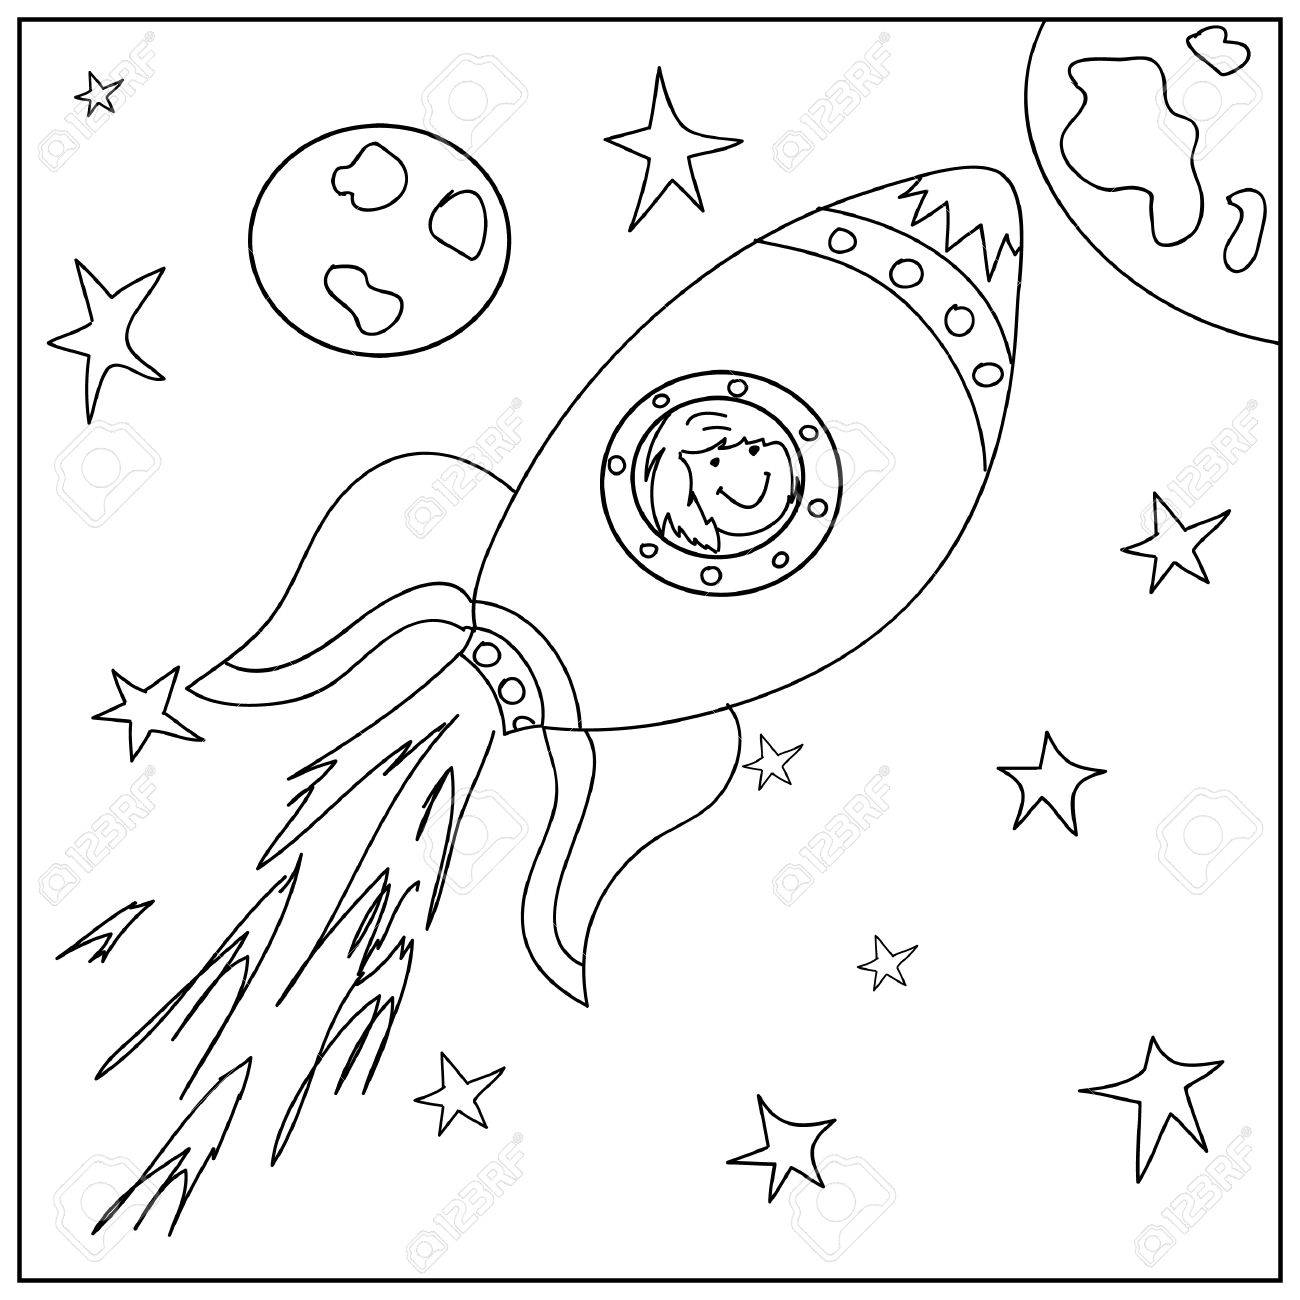 1300x1300 Spaceship Kids Coloring Page Stock Photo, Picture And Royalty Free